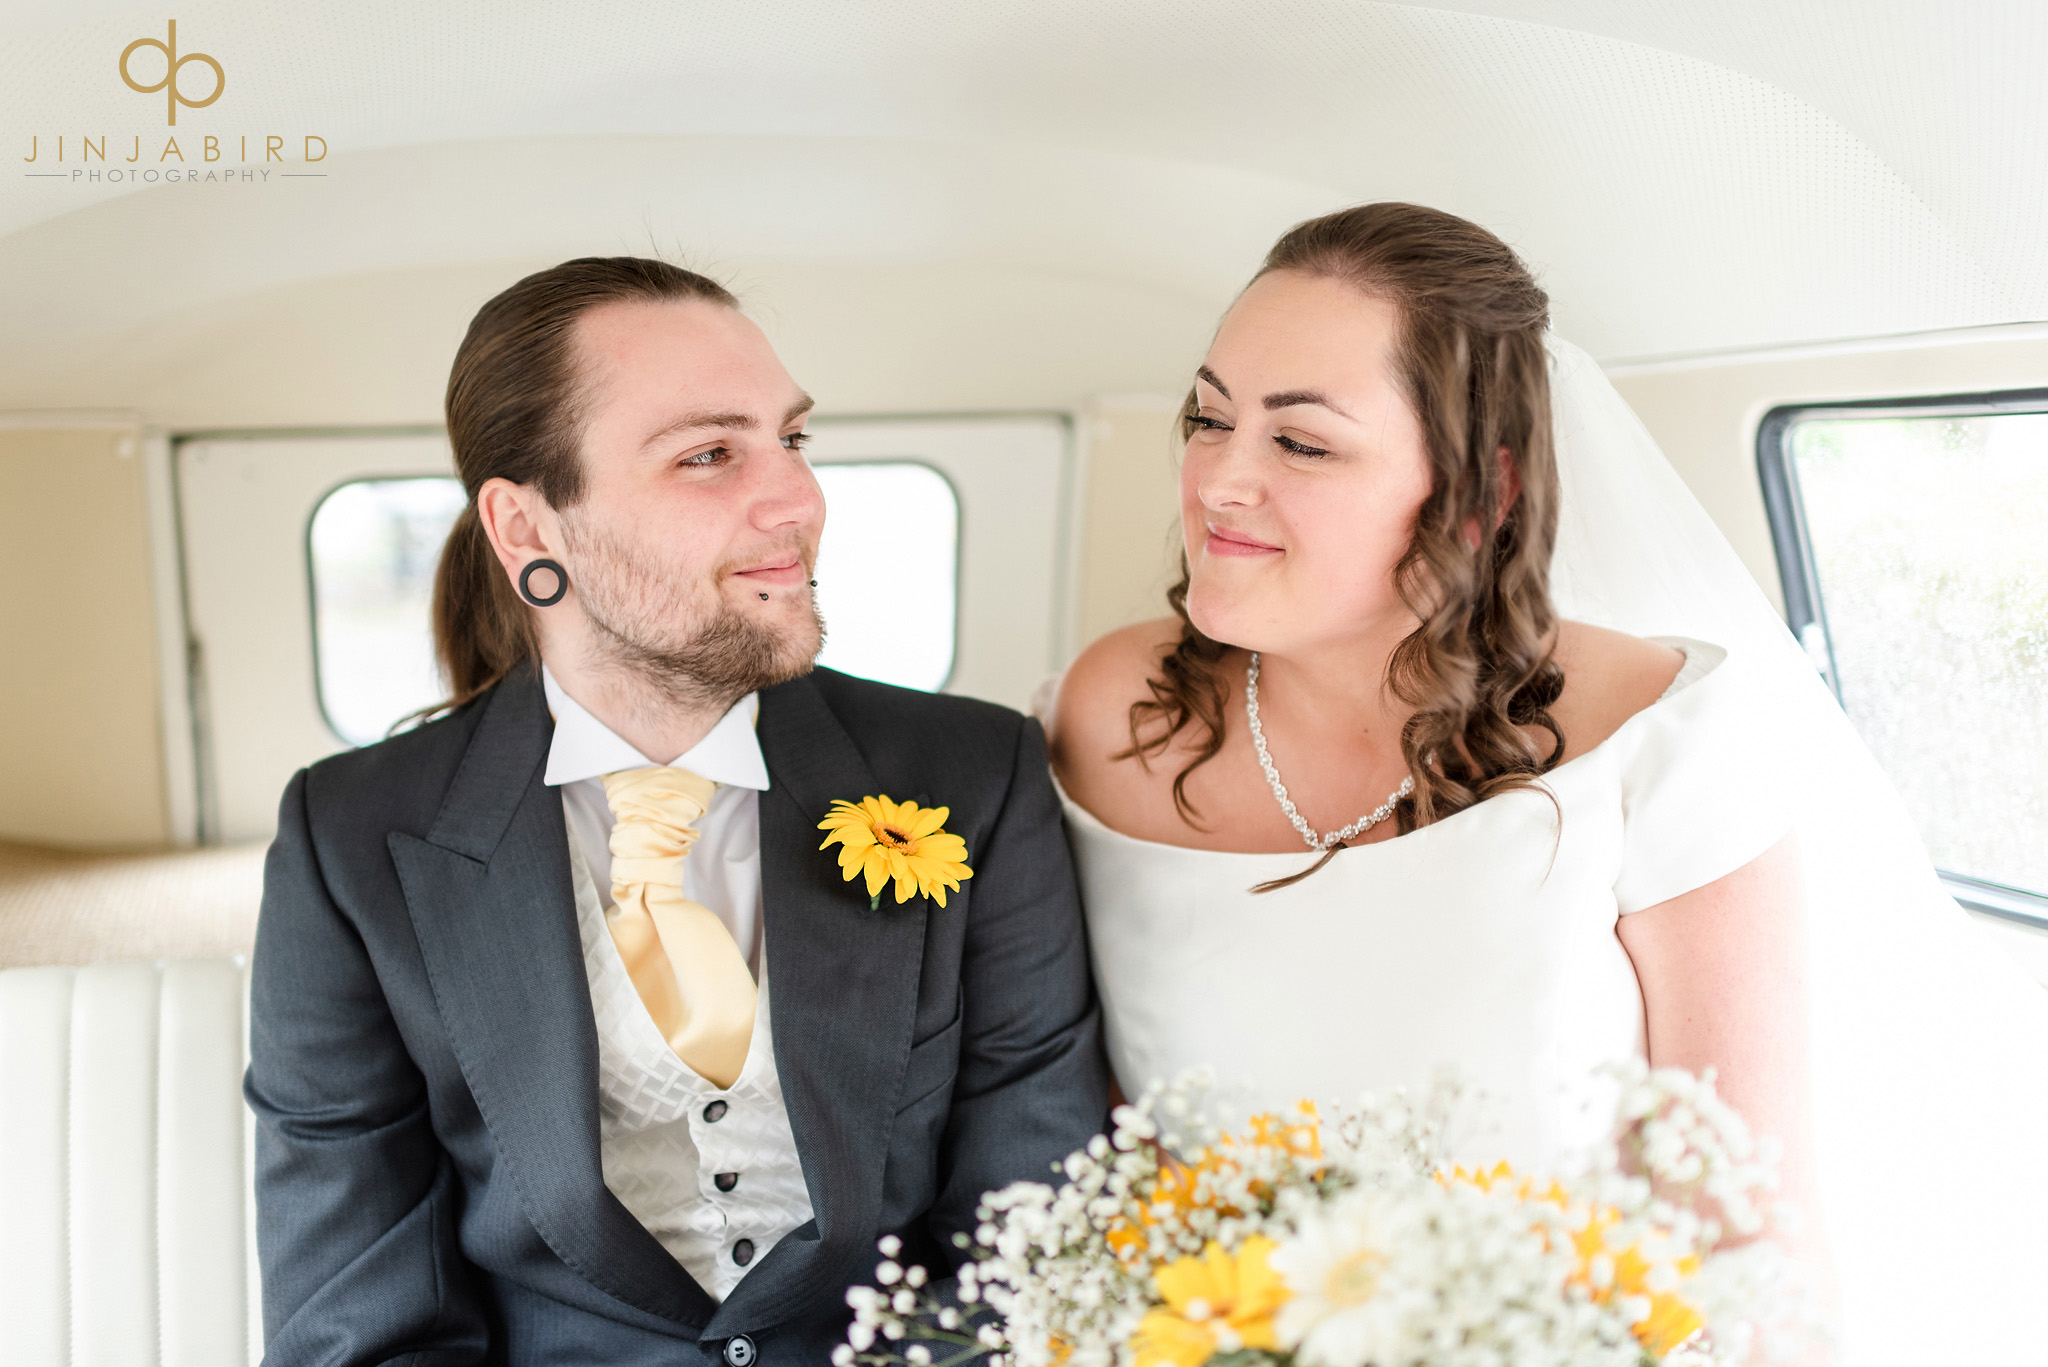 wedding campervans northamponshire